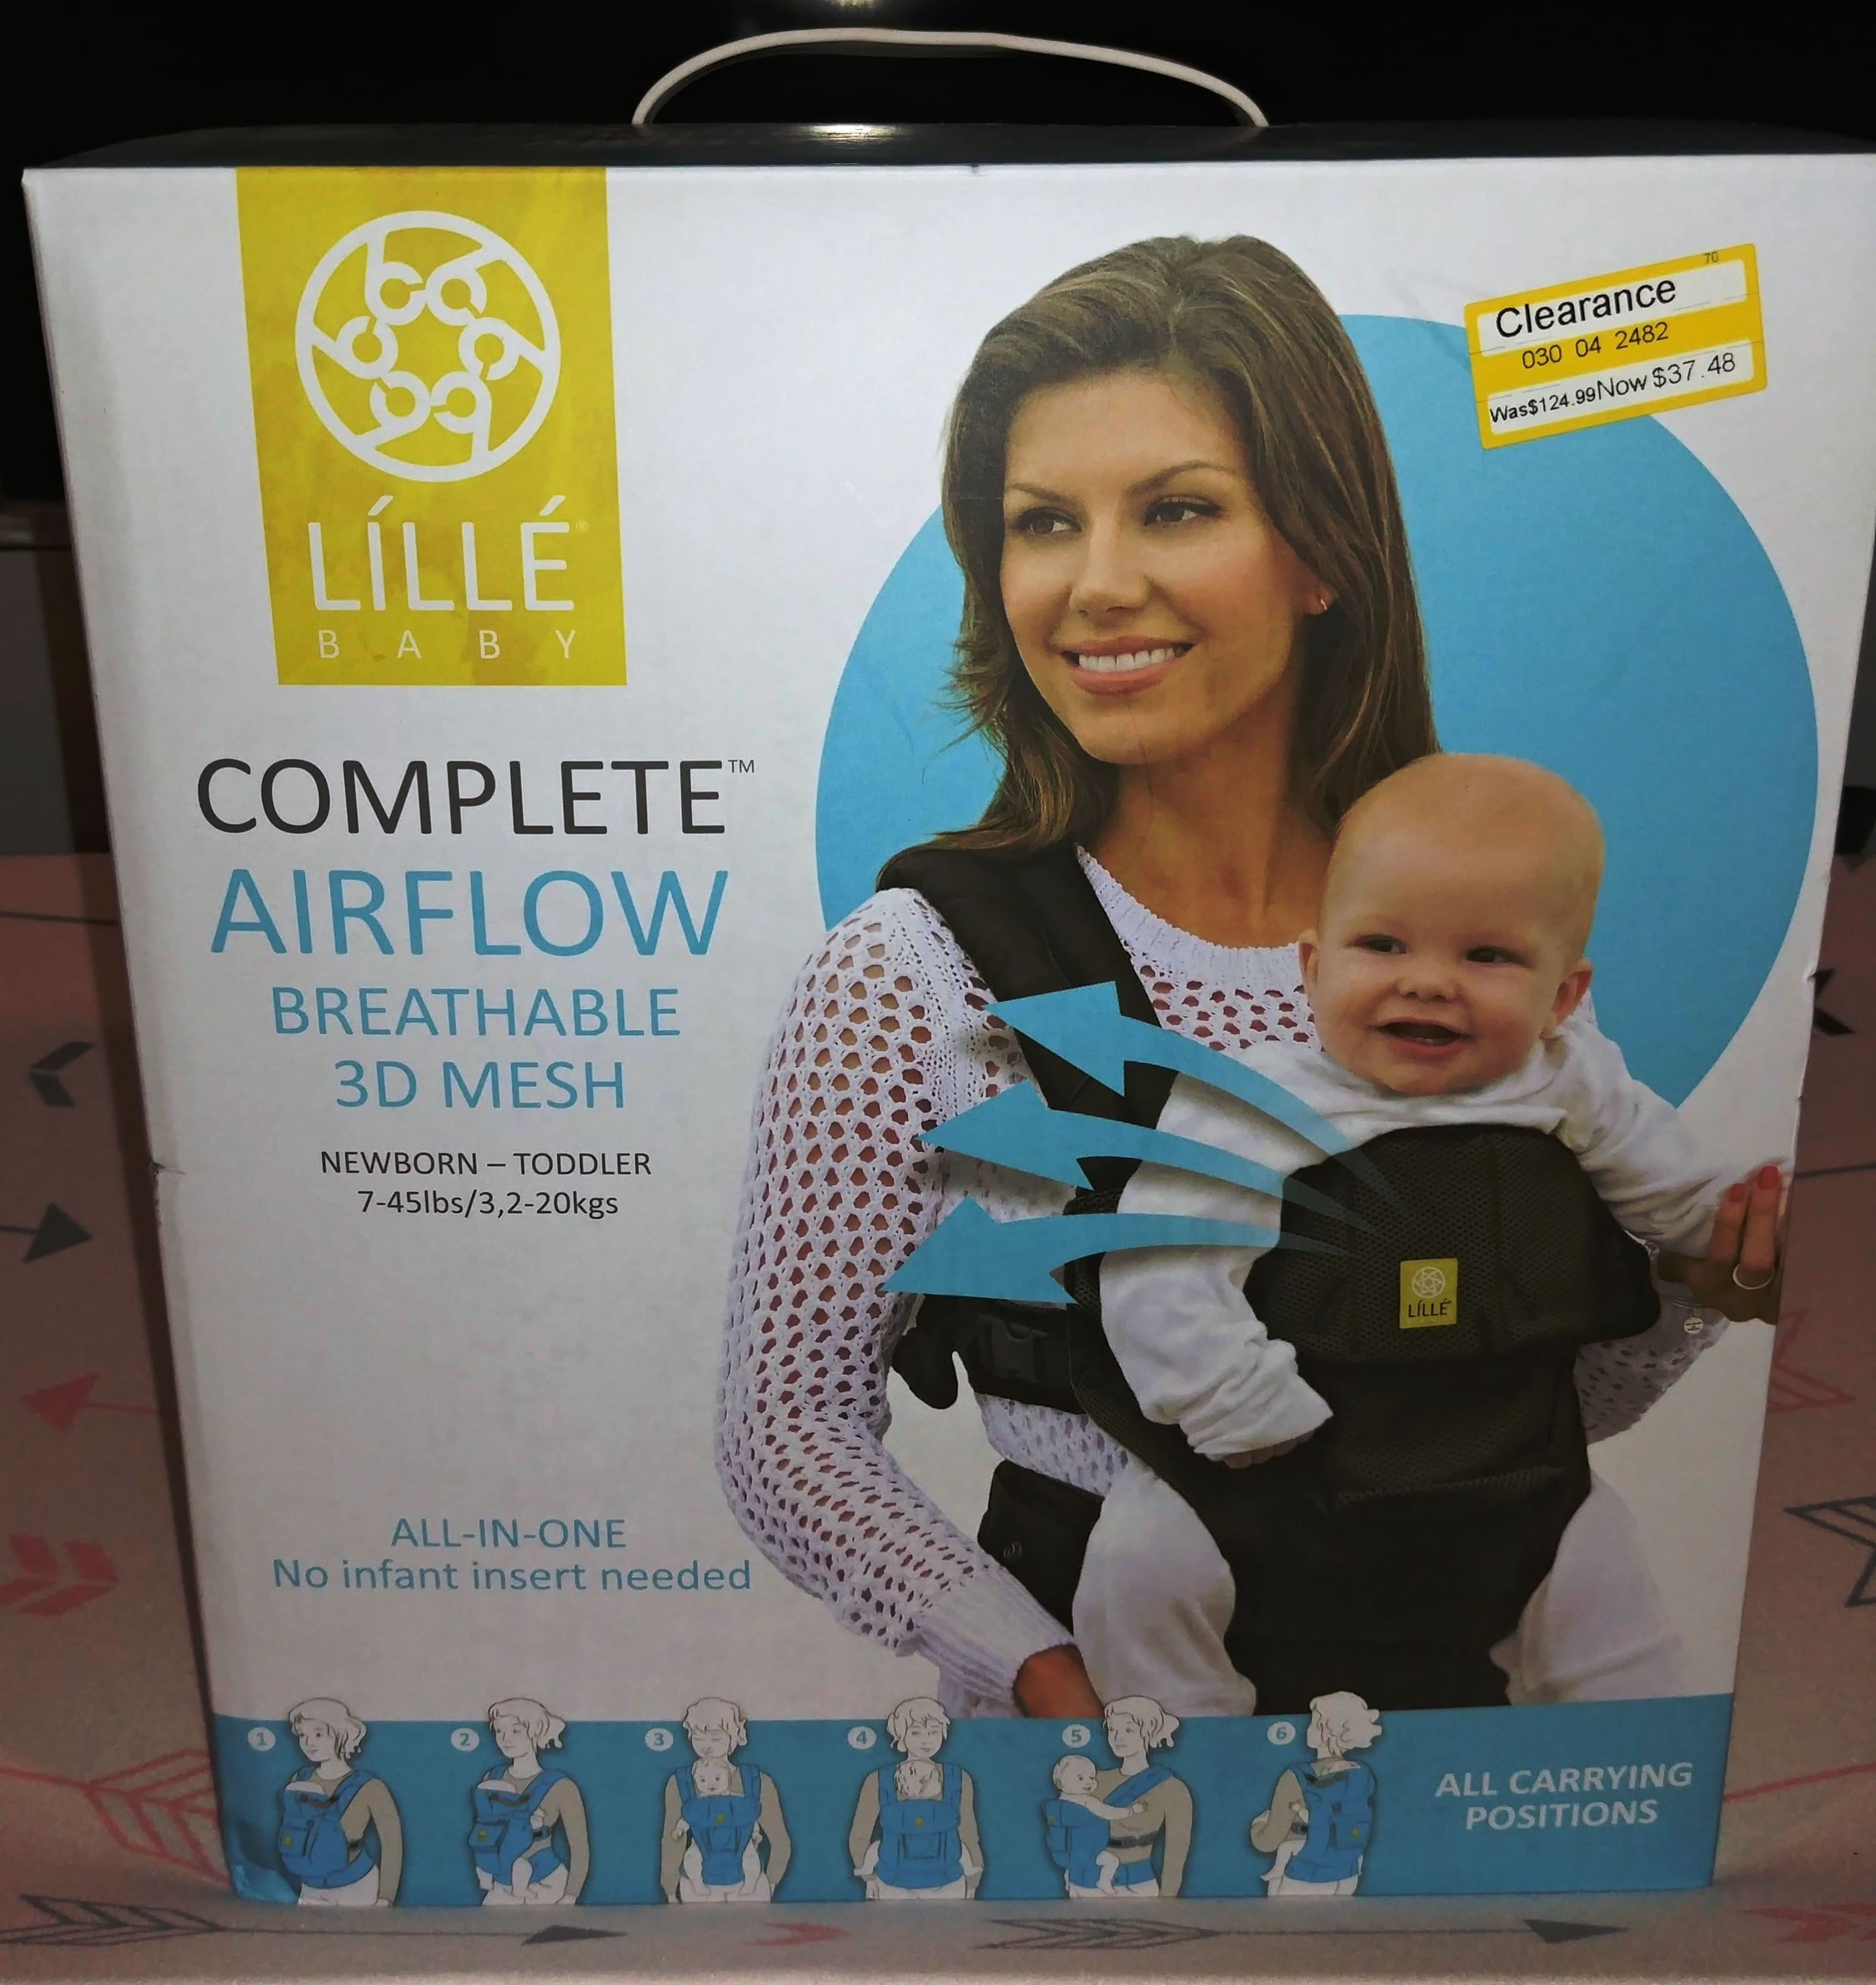 LILLEbaby 6-Position COMPLETE Airflow Baby & Child Carrier - Black - $33.73 @ Target B&M Clearance YMMV